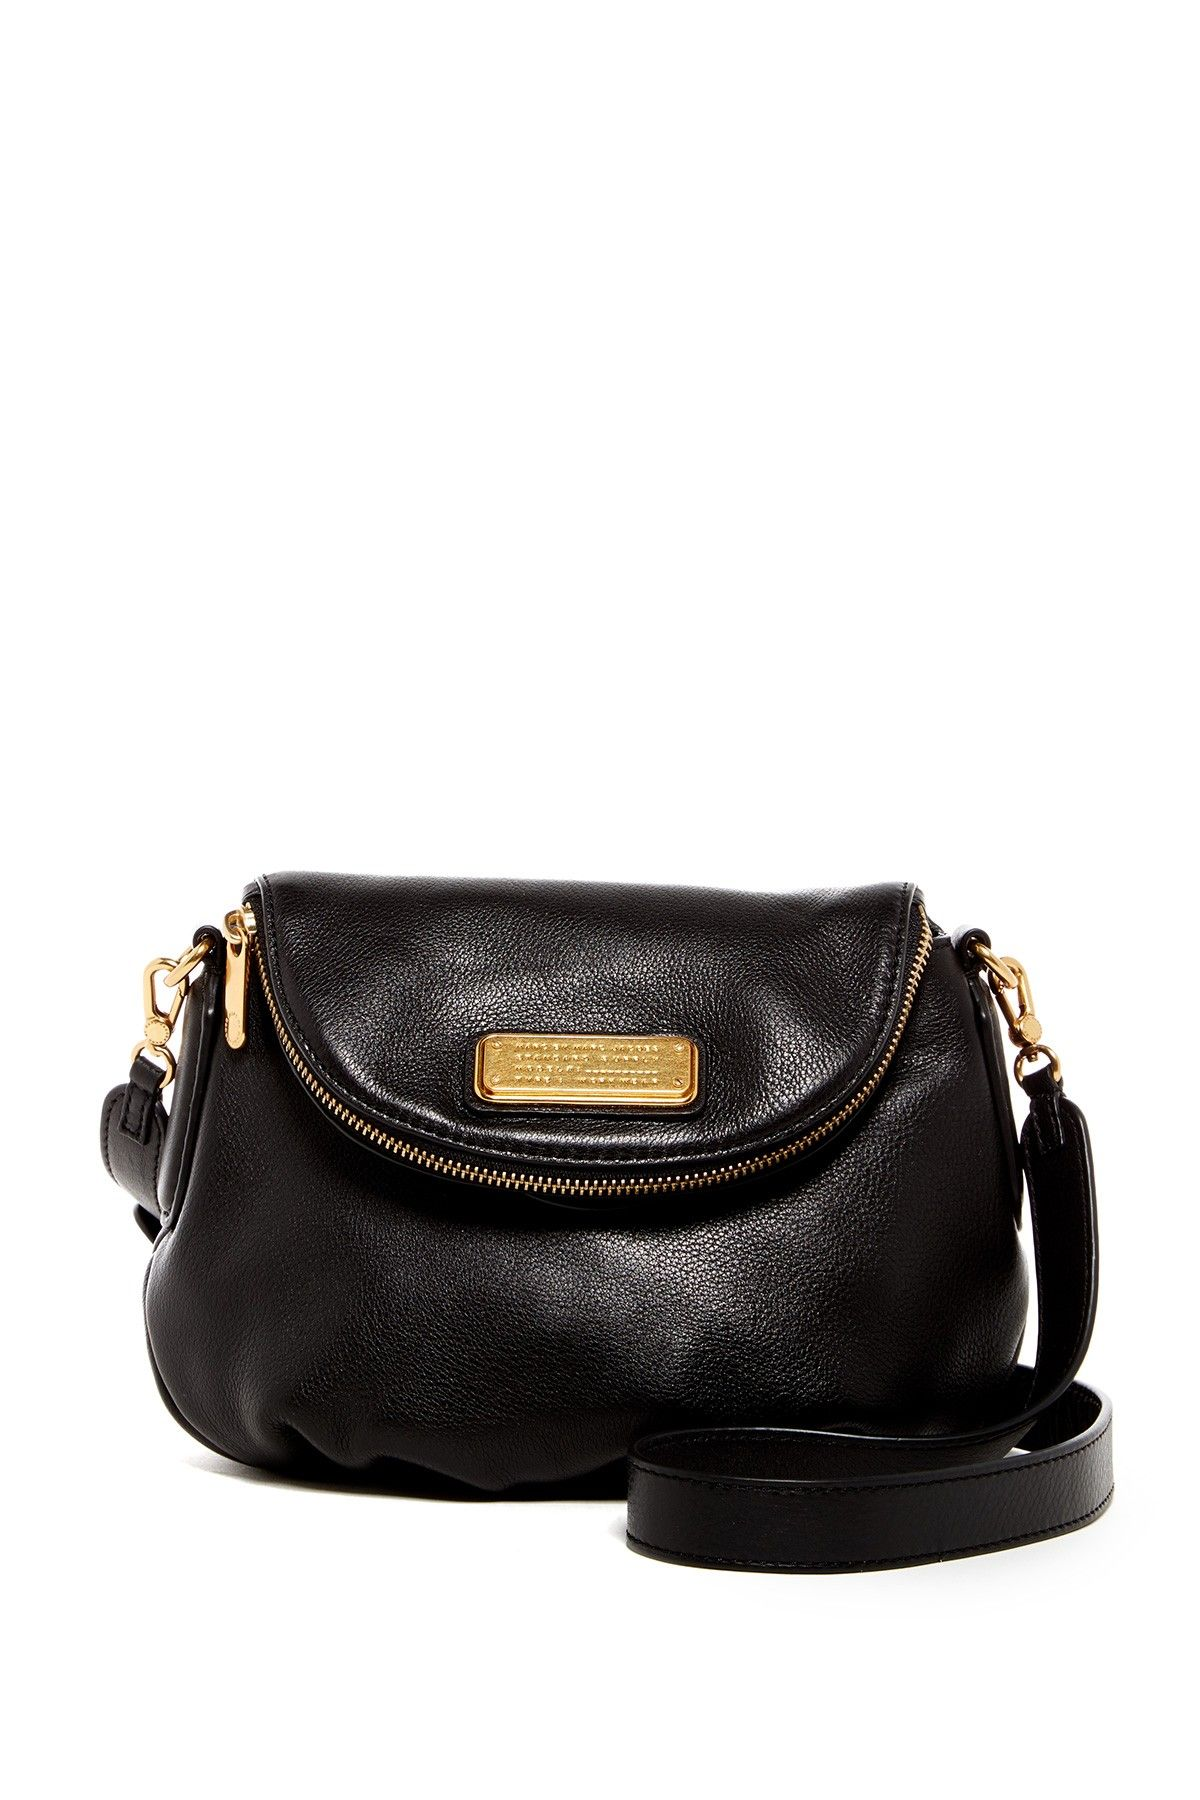 Marc by Marc Jacobs - Mini Natasha Leather Crossbody  34ea8631c5ab6